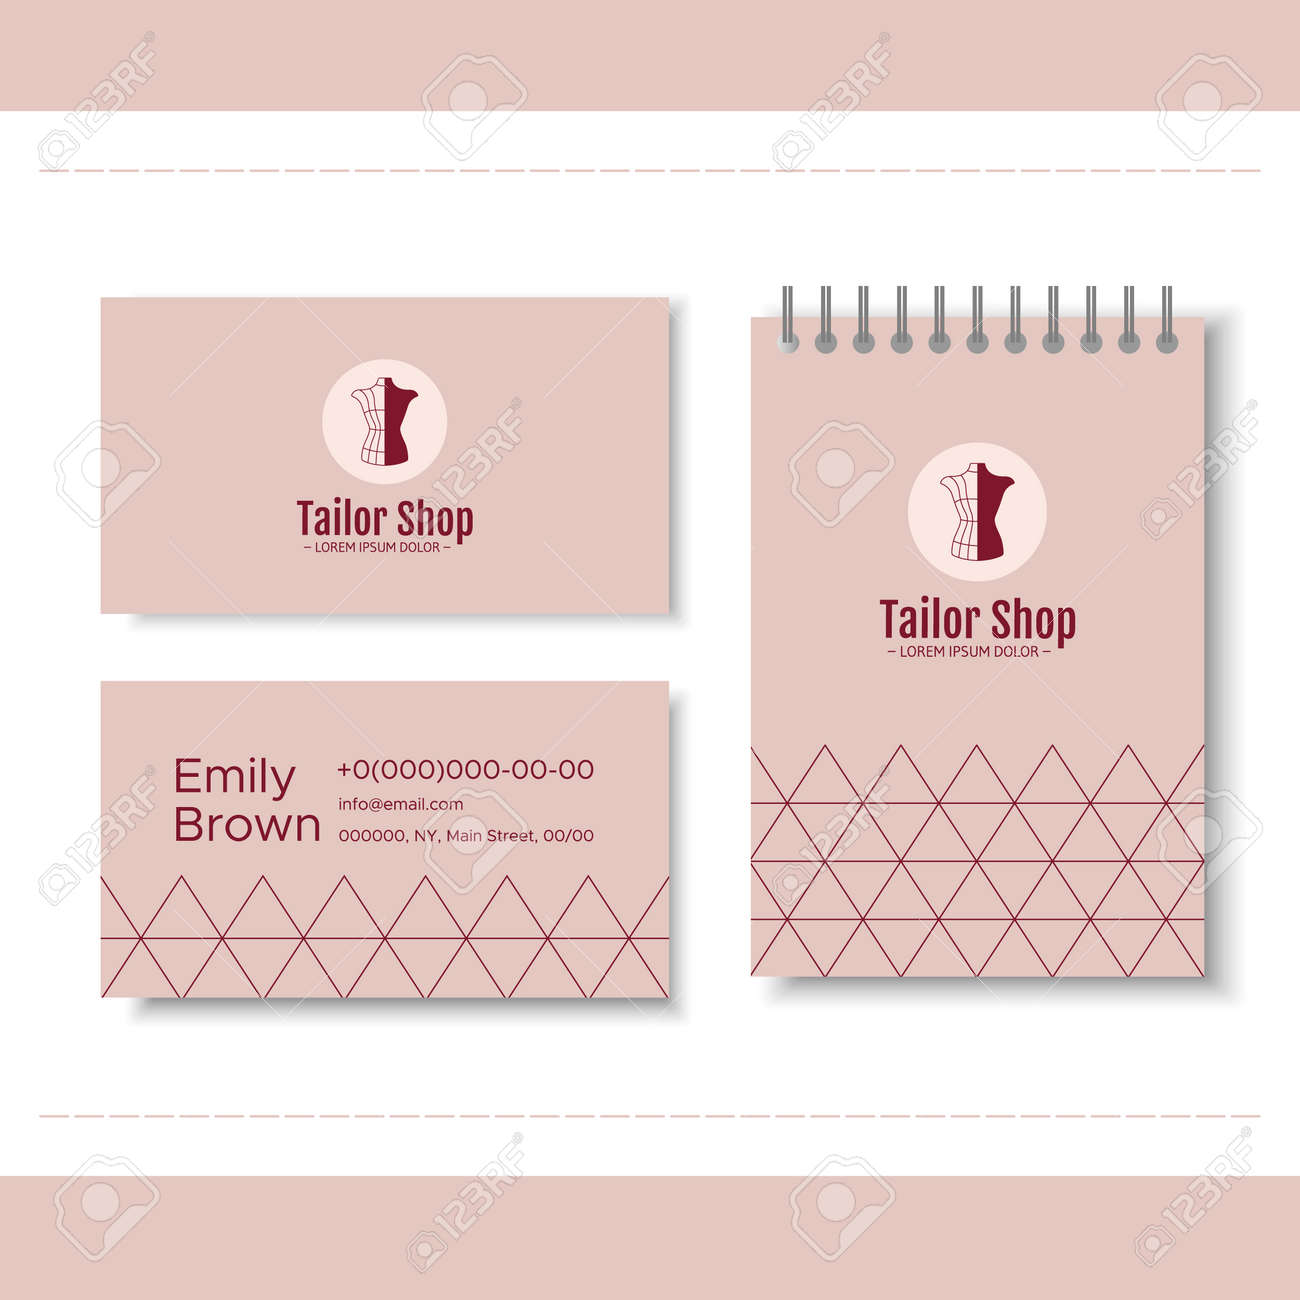 Branding For Tailor Shop Dressmakers Salon Sewing Studio Clothing Royalty Free Cliparts Vectors And Stock Illustration Image 91197843